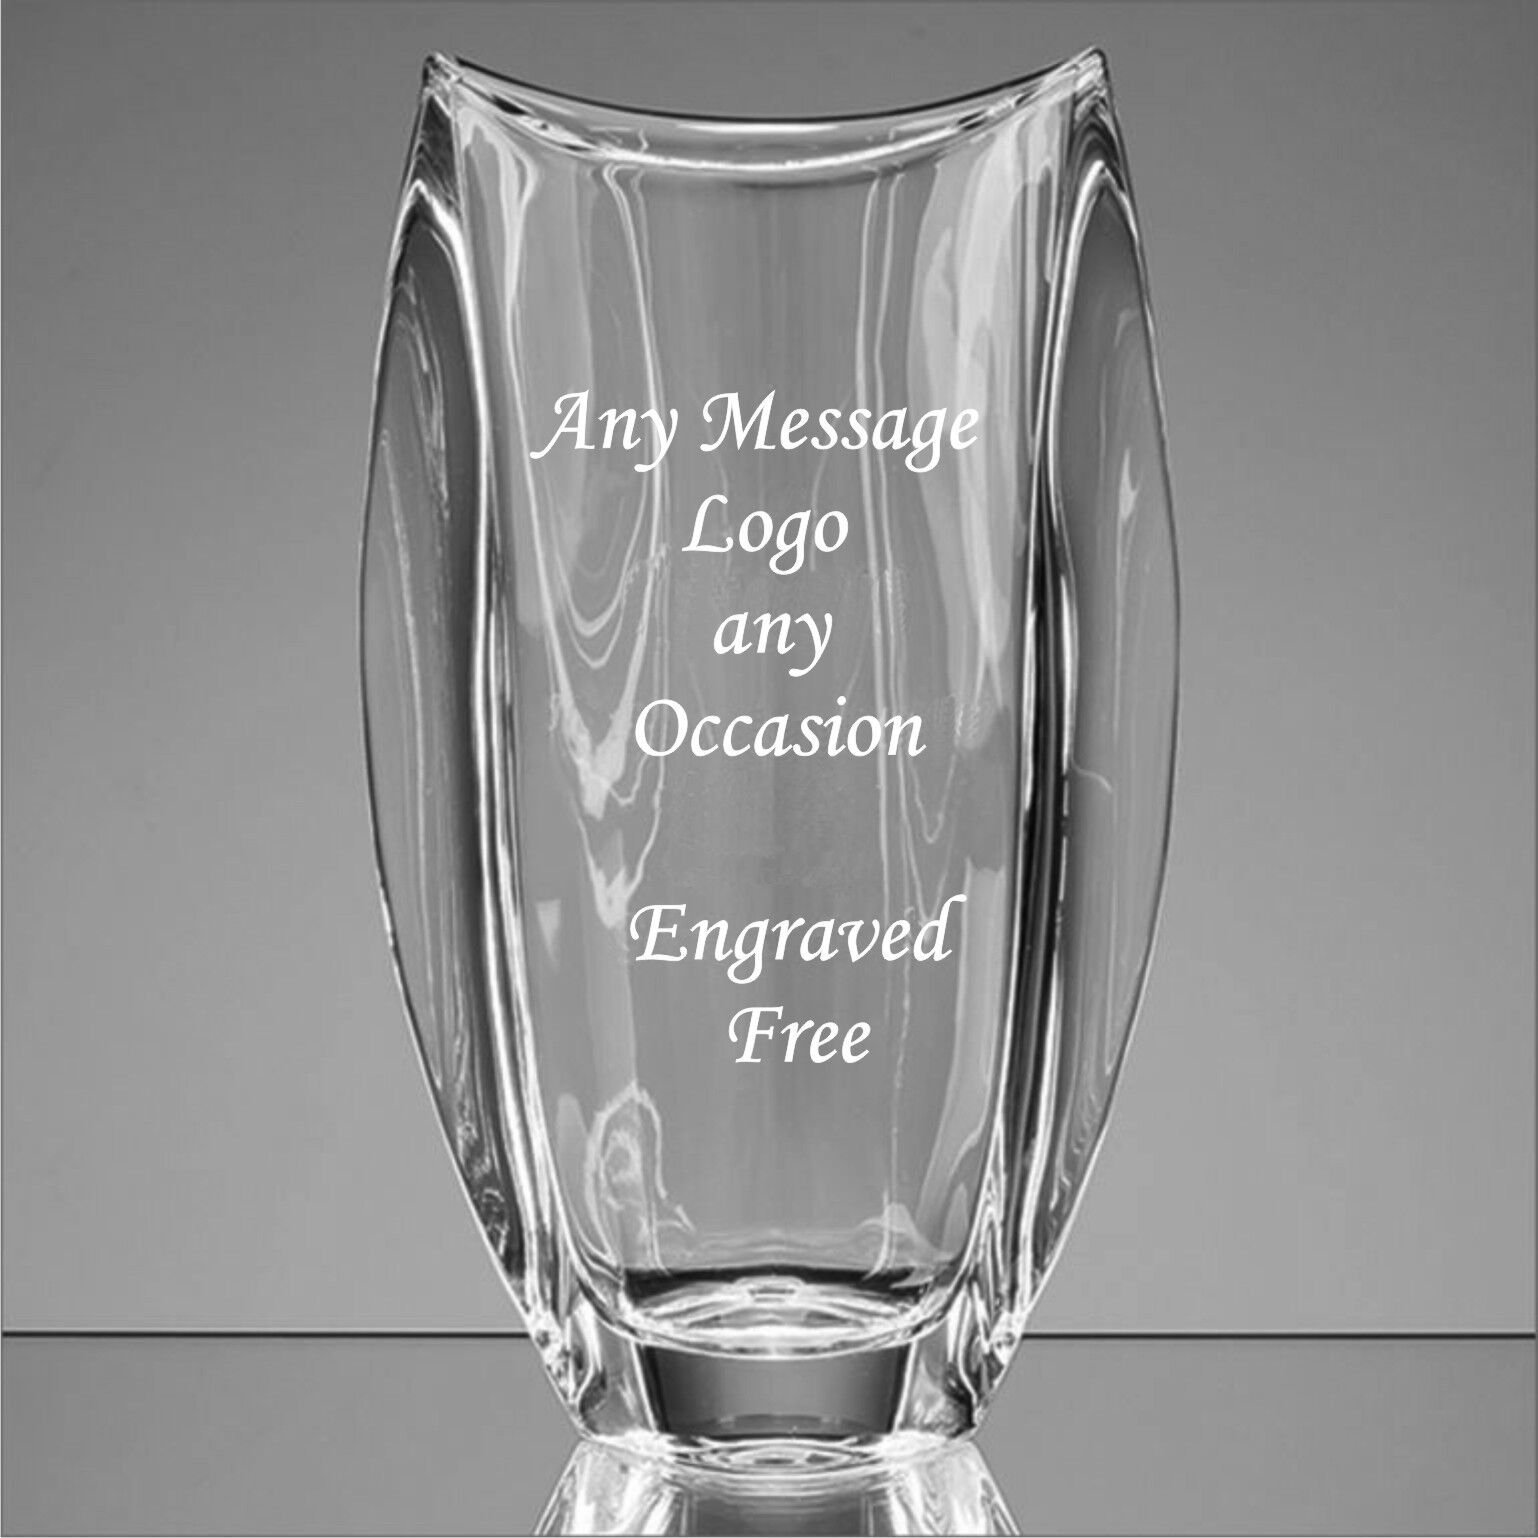 Personalised Engraved Glass Vase Trophy - Award, Corporate Gifts, Any logo